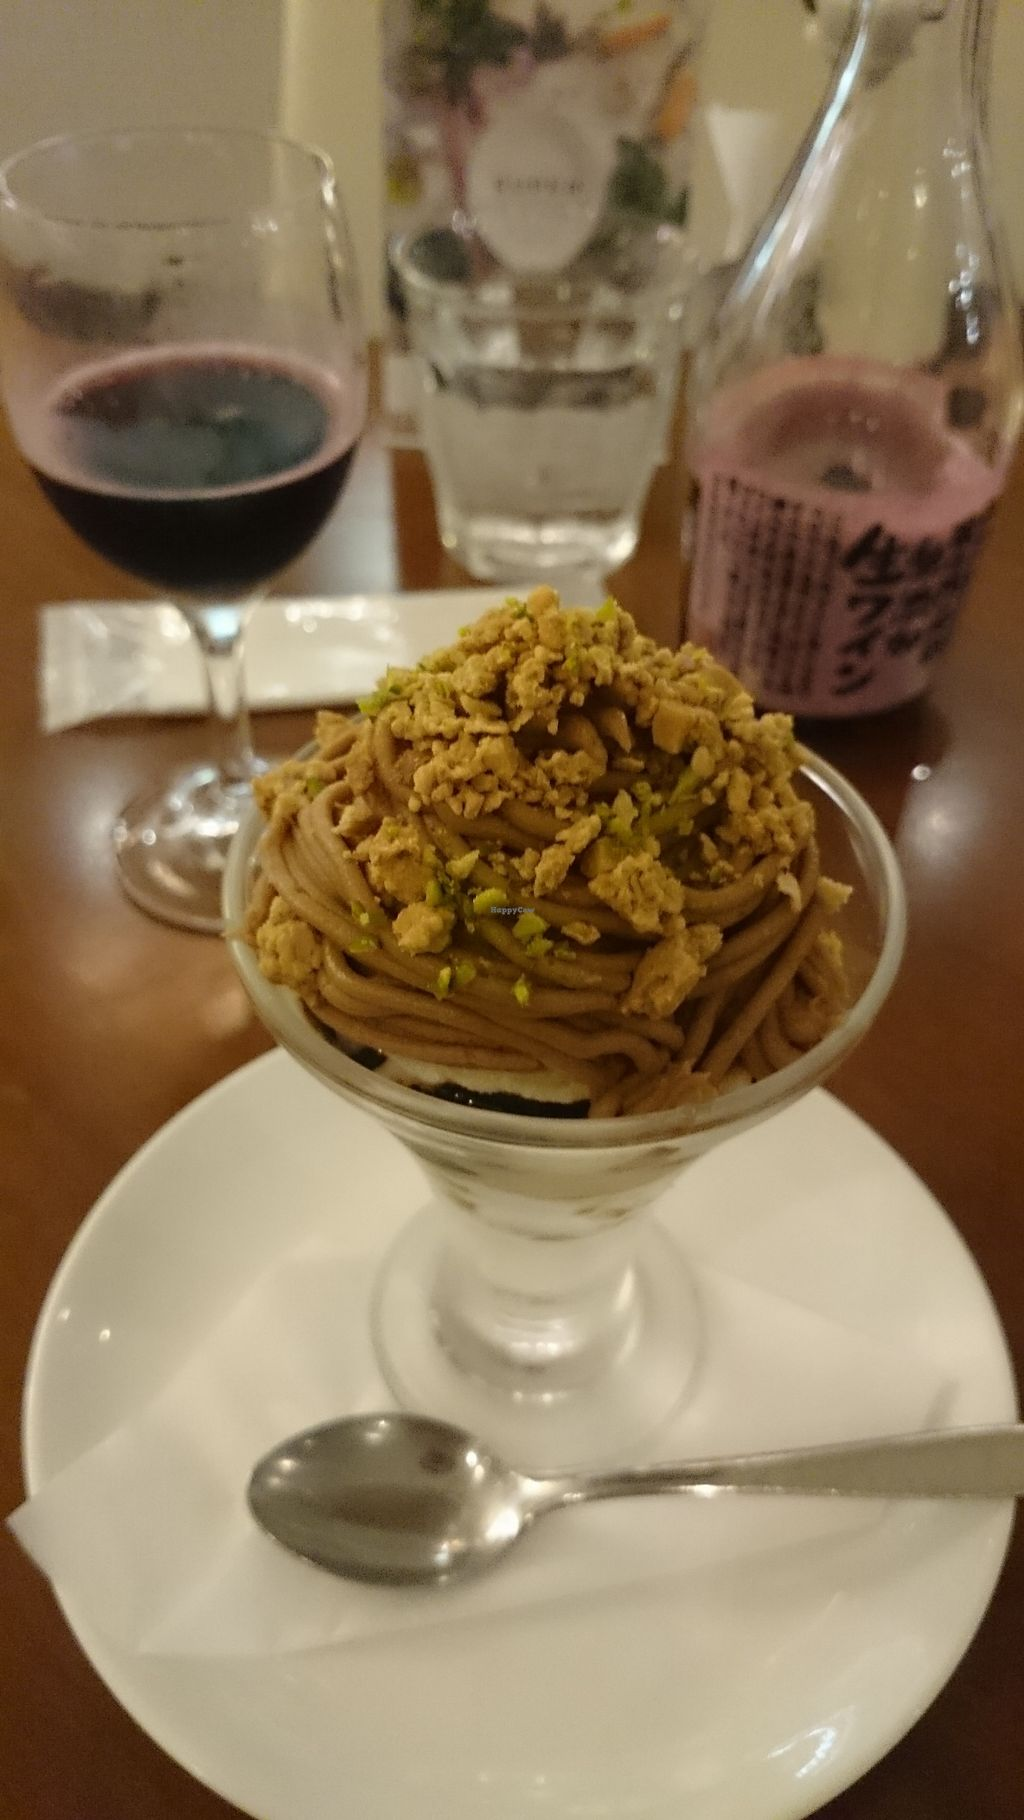 """Photo of Chaya Macrobiotics - Shiodome  by <a href=""""/members/profile/chb-pbfp"""">chb-pbfp</a> <br/>14 <br/> August 24, 2017  - <a href='/contact/abuse/image/31179/296658'>Report</a>"""